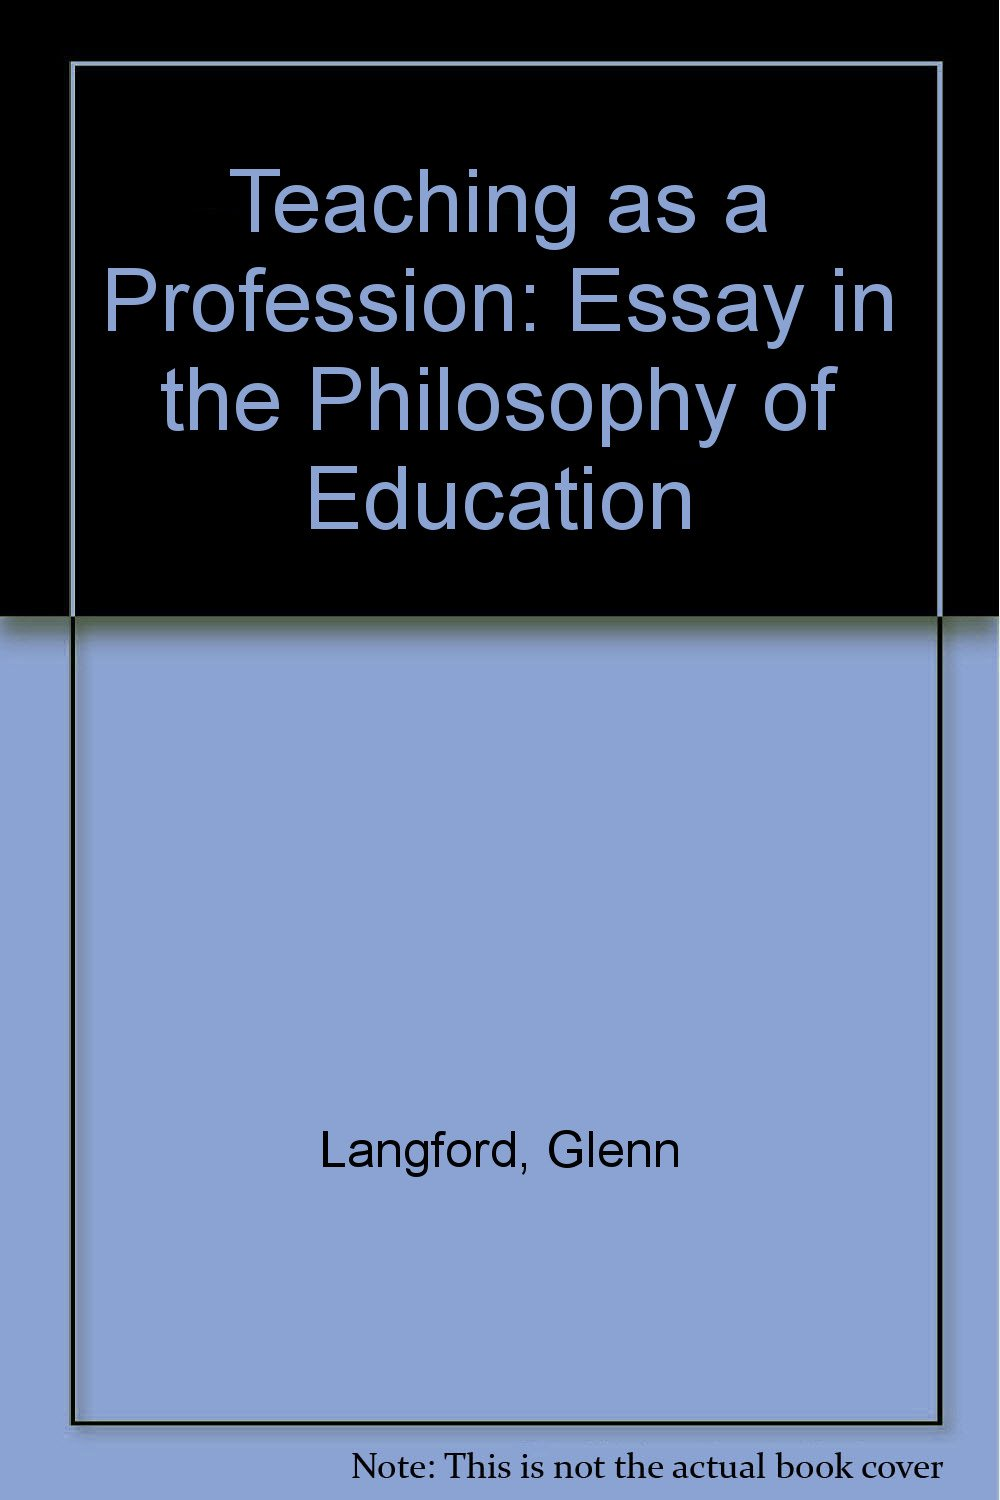 philosophy of education The philosophy of education is the study of the purpose, process, nature and ideals of education.